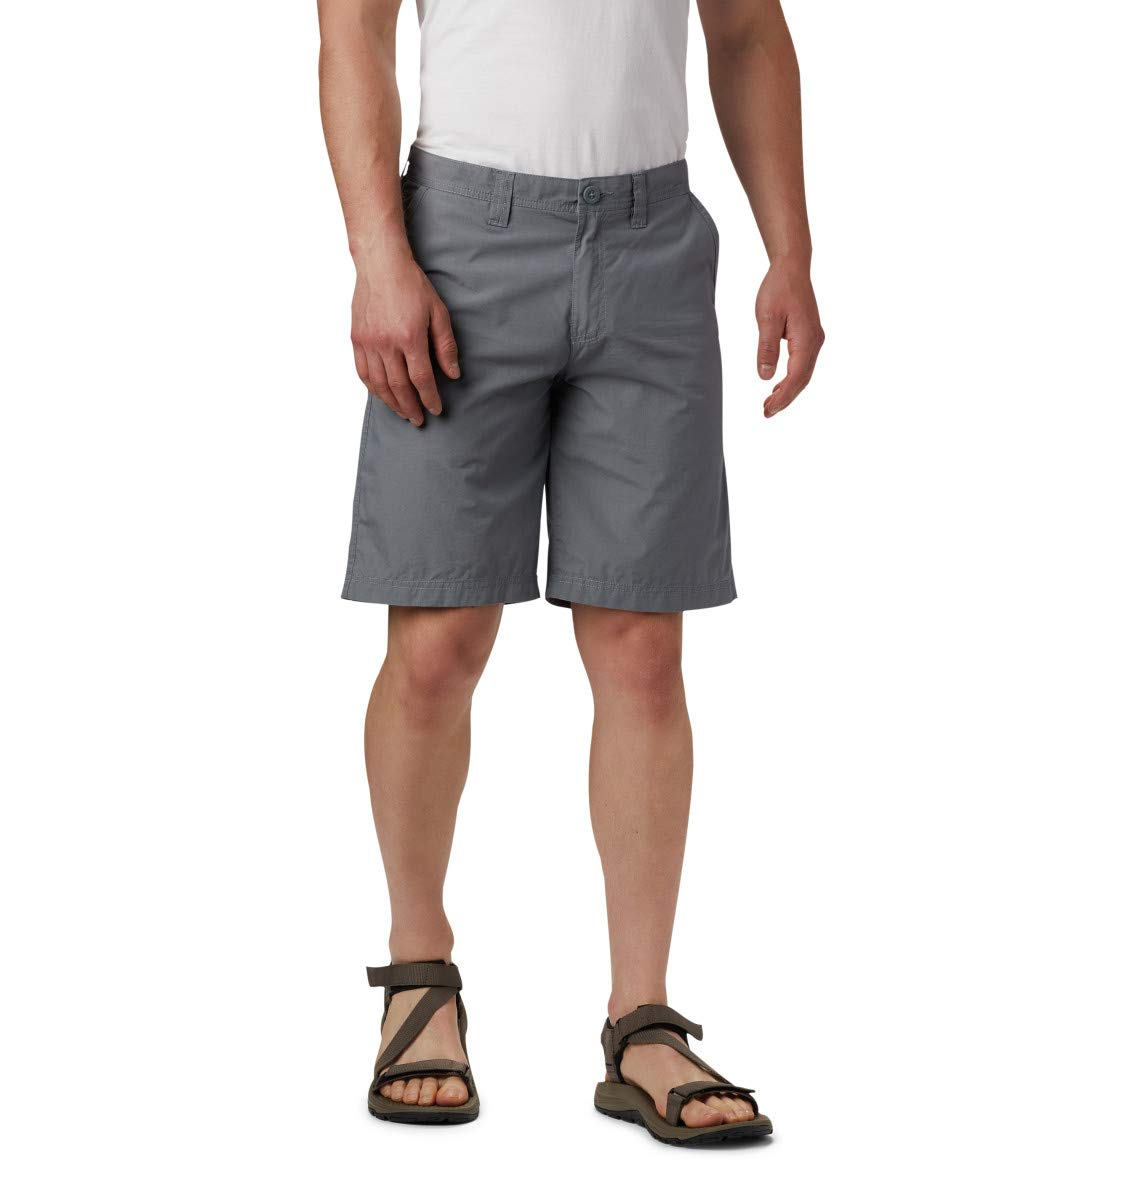 Columbia Men's Washed Out Chino Short, Grey Ash, 34x8 by Columbia